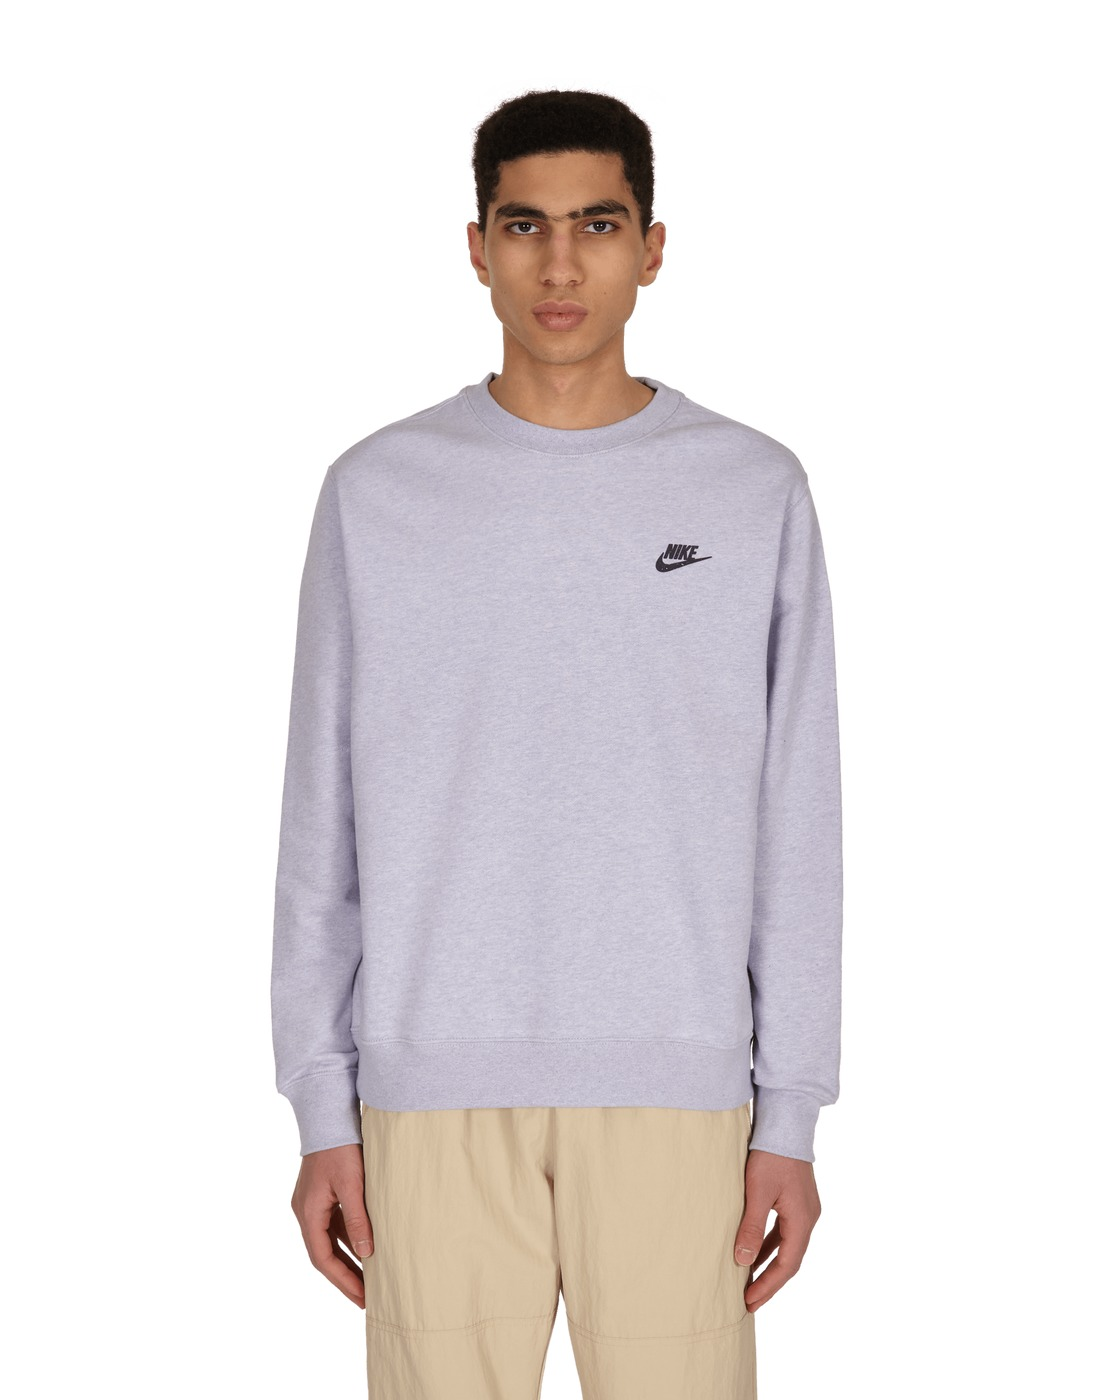 Photo: Nike Logo Crewneck Sweatshirt Purple Chalk/Dk Smoke Grey